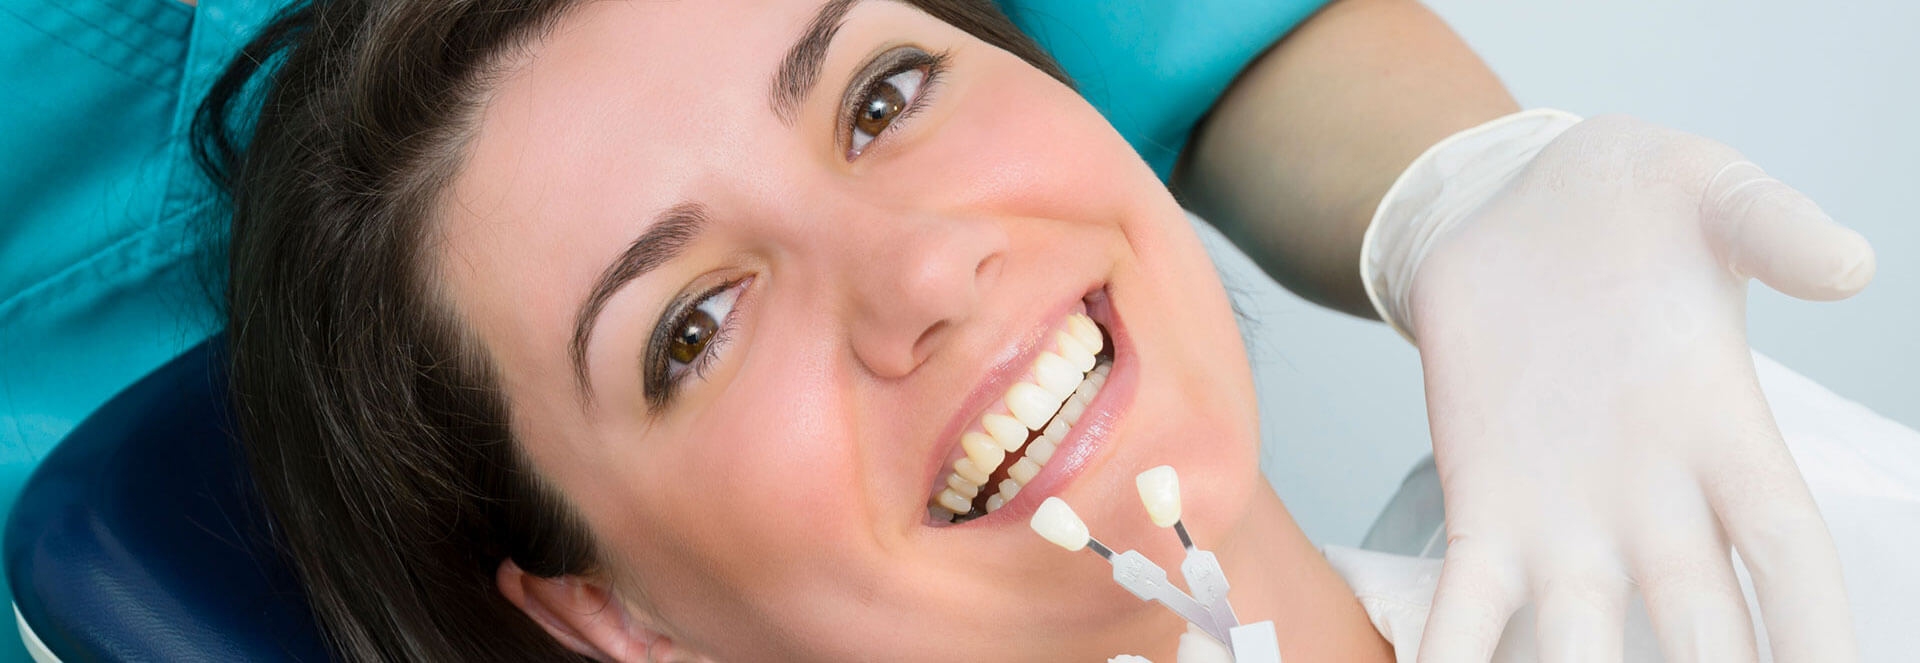 Comparing a pair of porcelain veneers with a smiling female patient